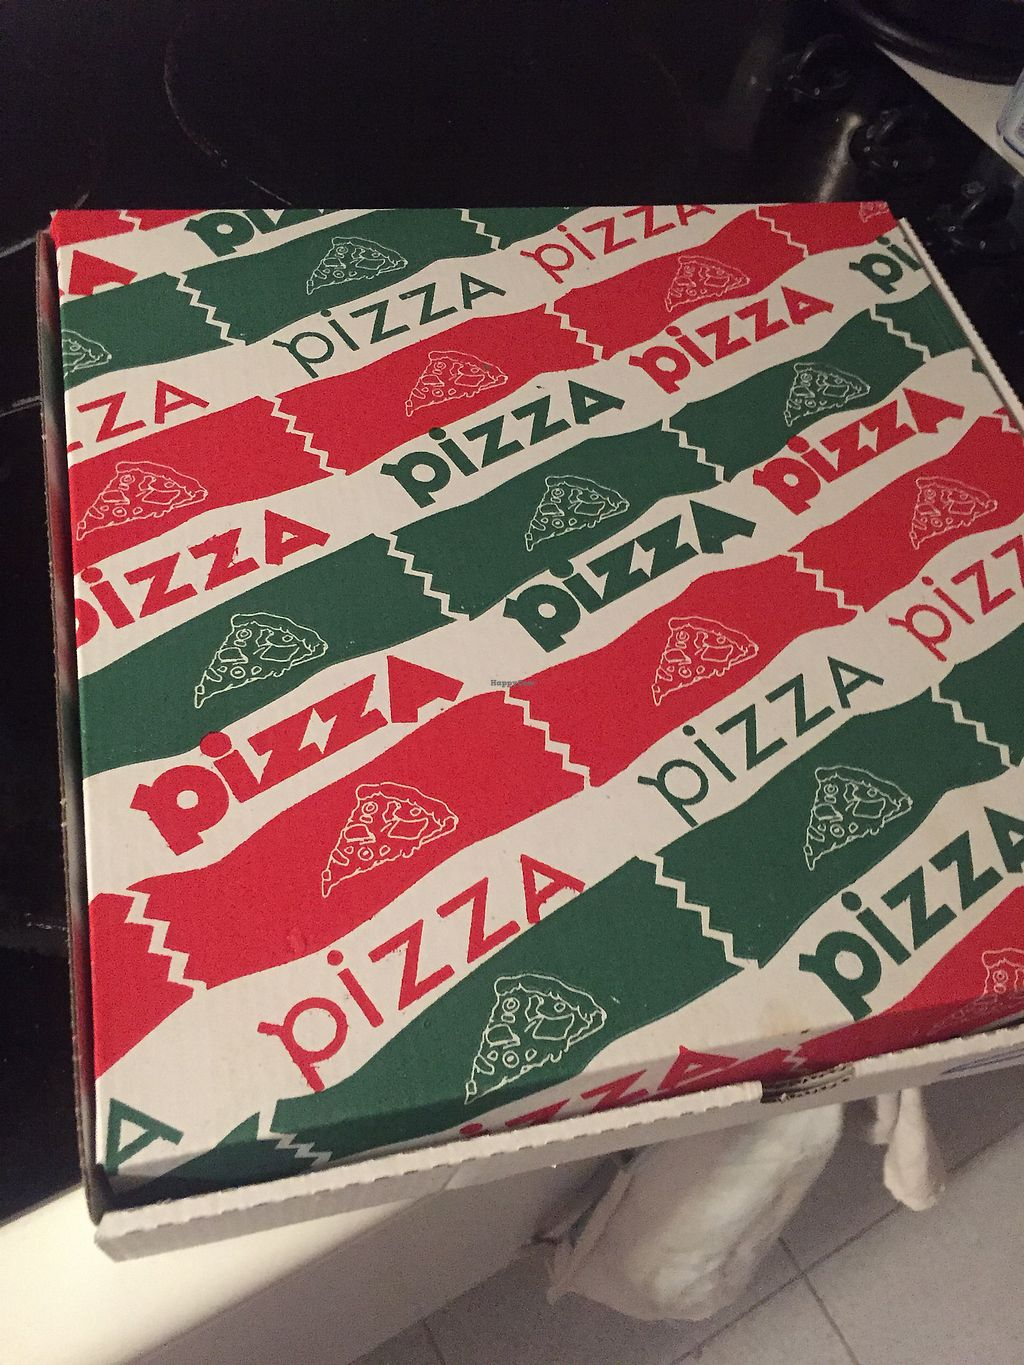 """Photo of Dolce Pizza y Los Veganos - Hipolit Lazaro  by <a href=""""/members/profile/Jameskille"""">Jameskille</a> <br/>Take away! <br/> September 5, 2017  - <a href='/contact/abuse/image/52506/301299'>Report</a>"""